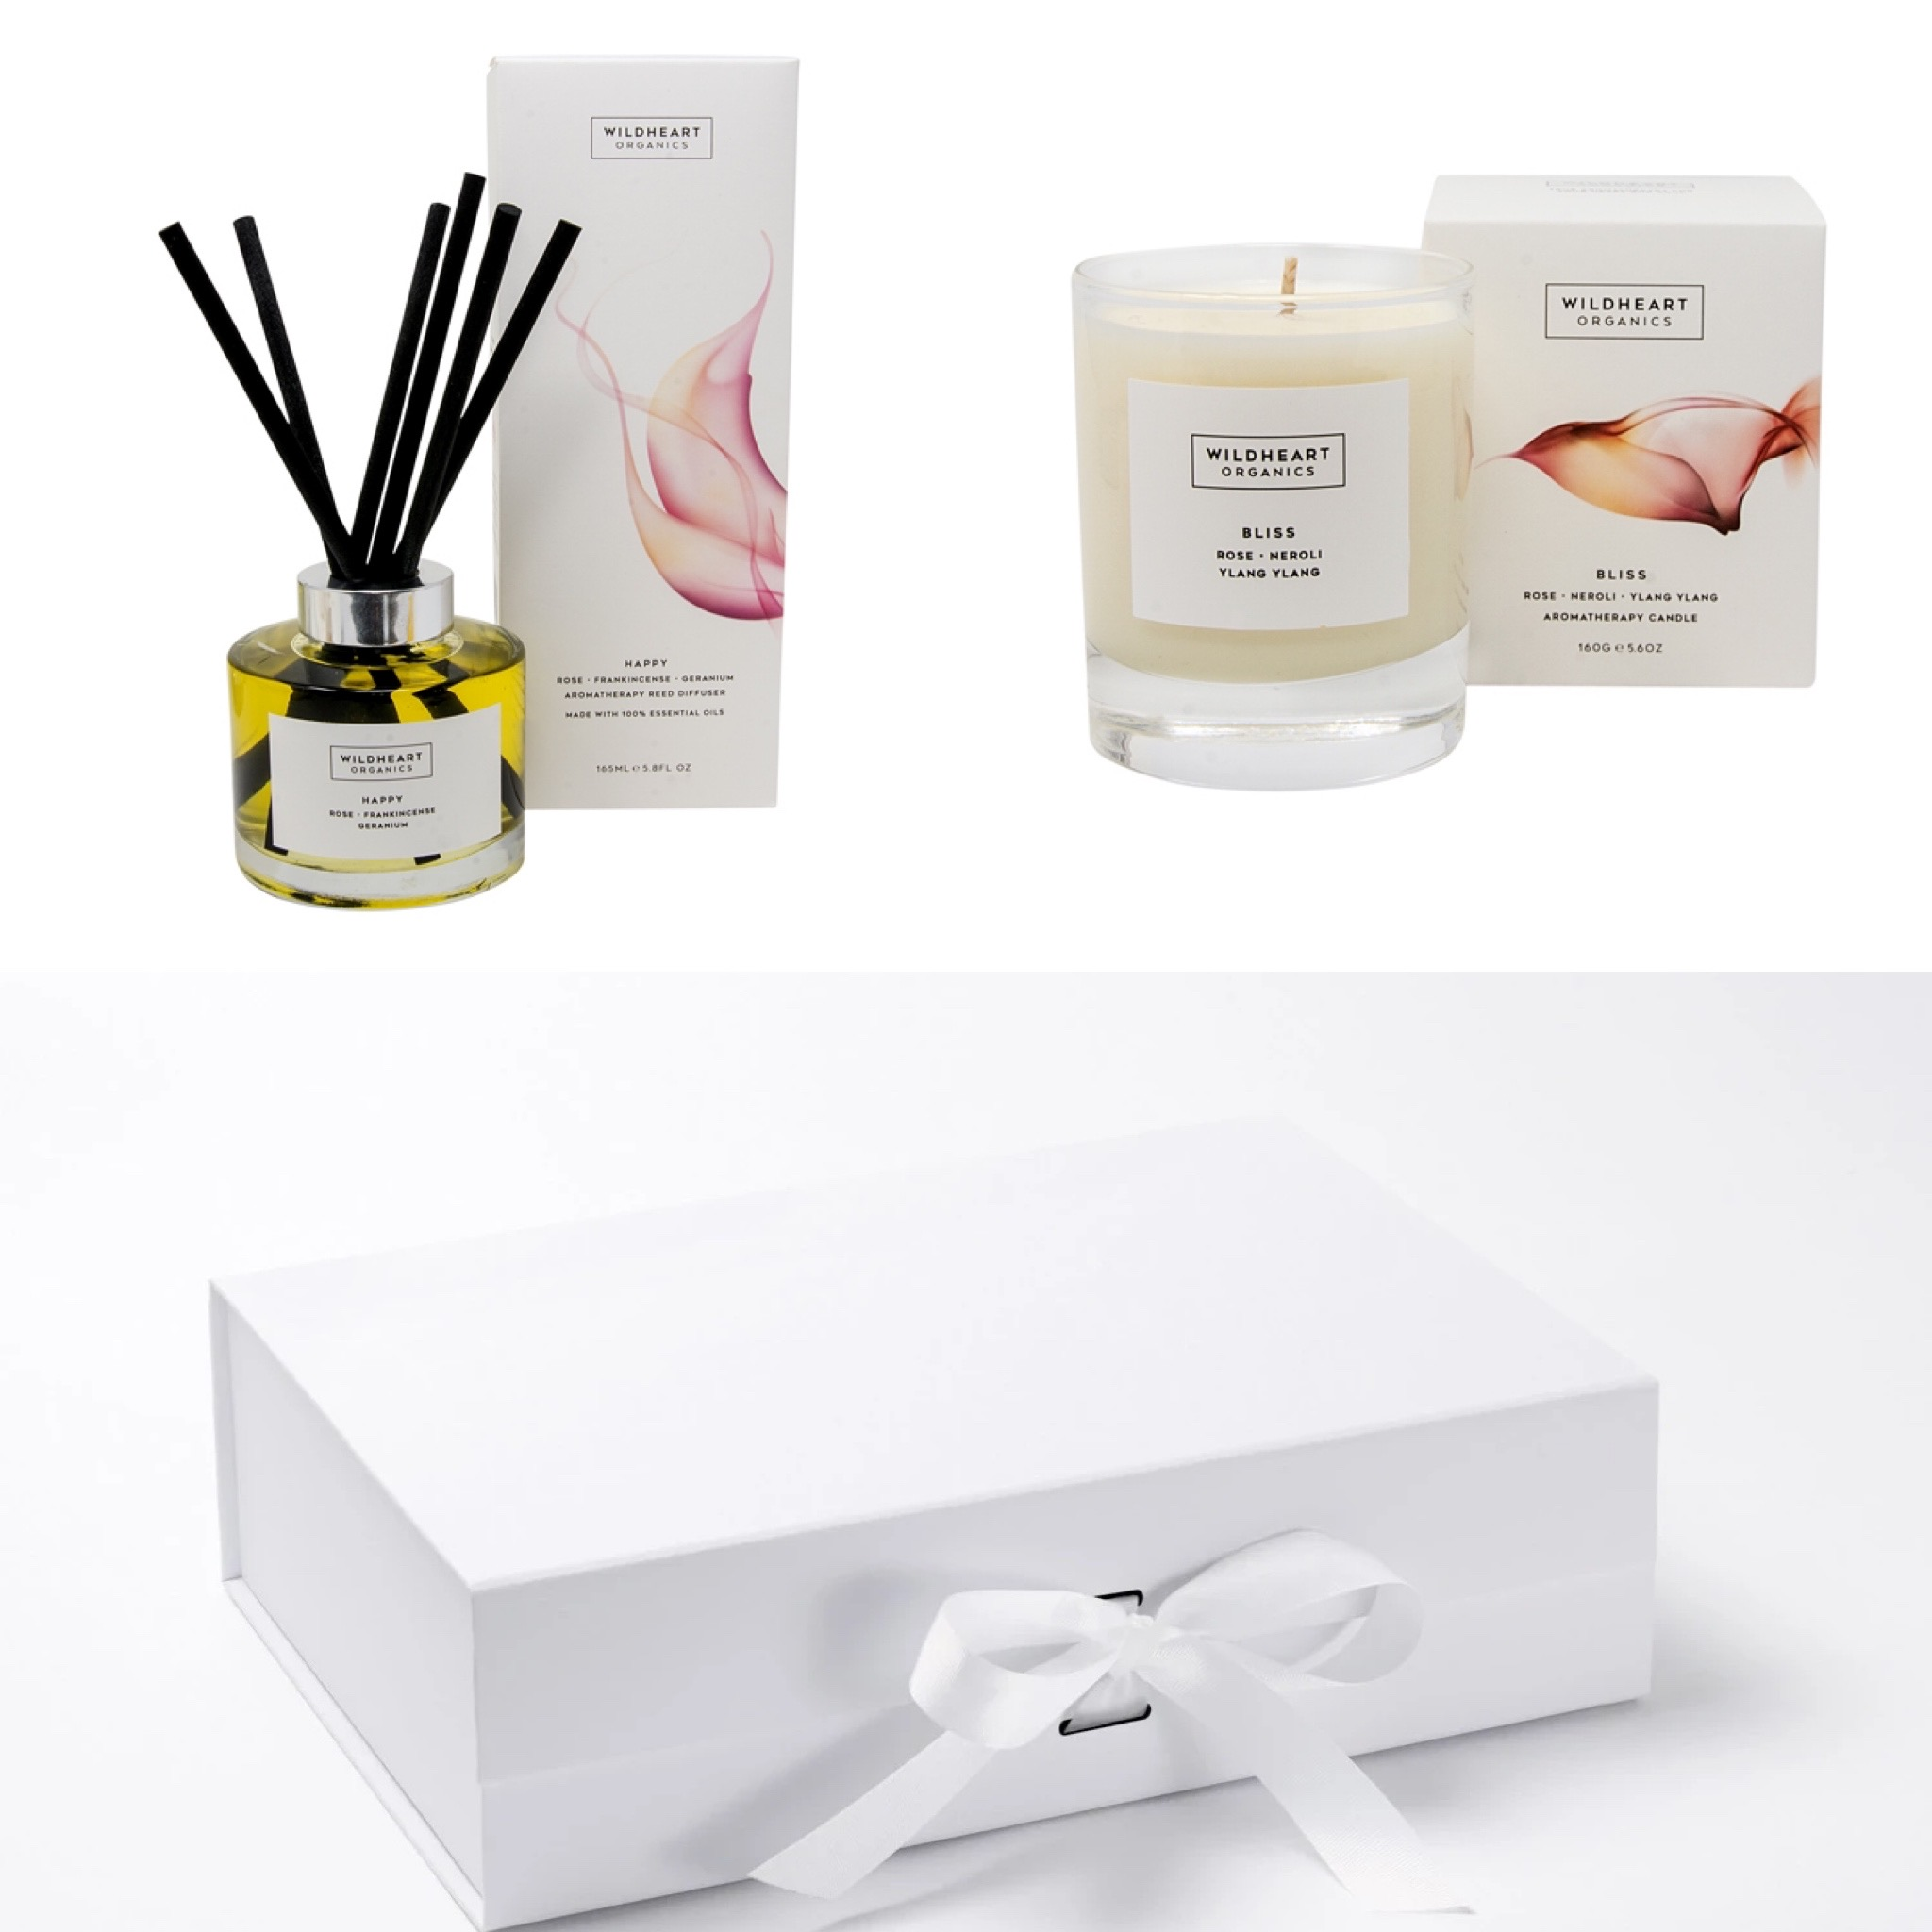 Wildheart Organics Gift Box - Select Your Own Products - Minimum Spend £45